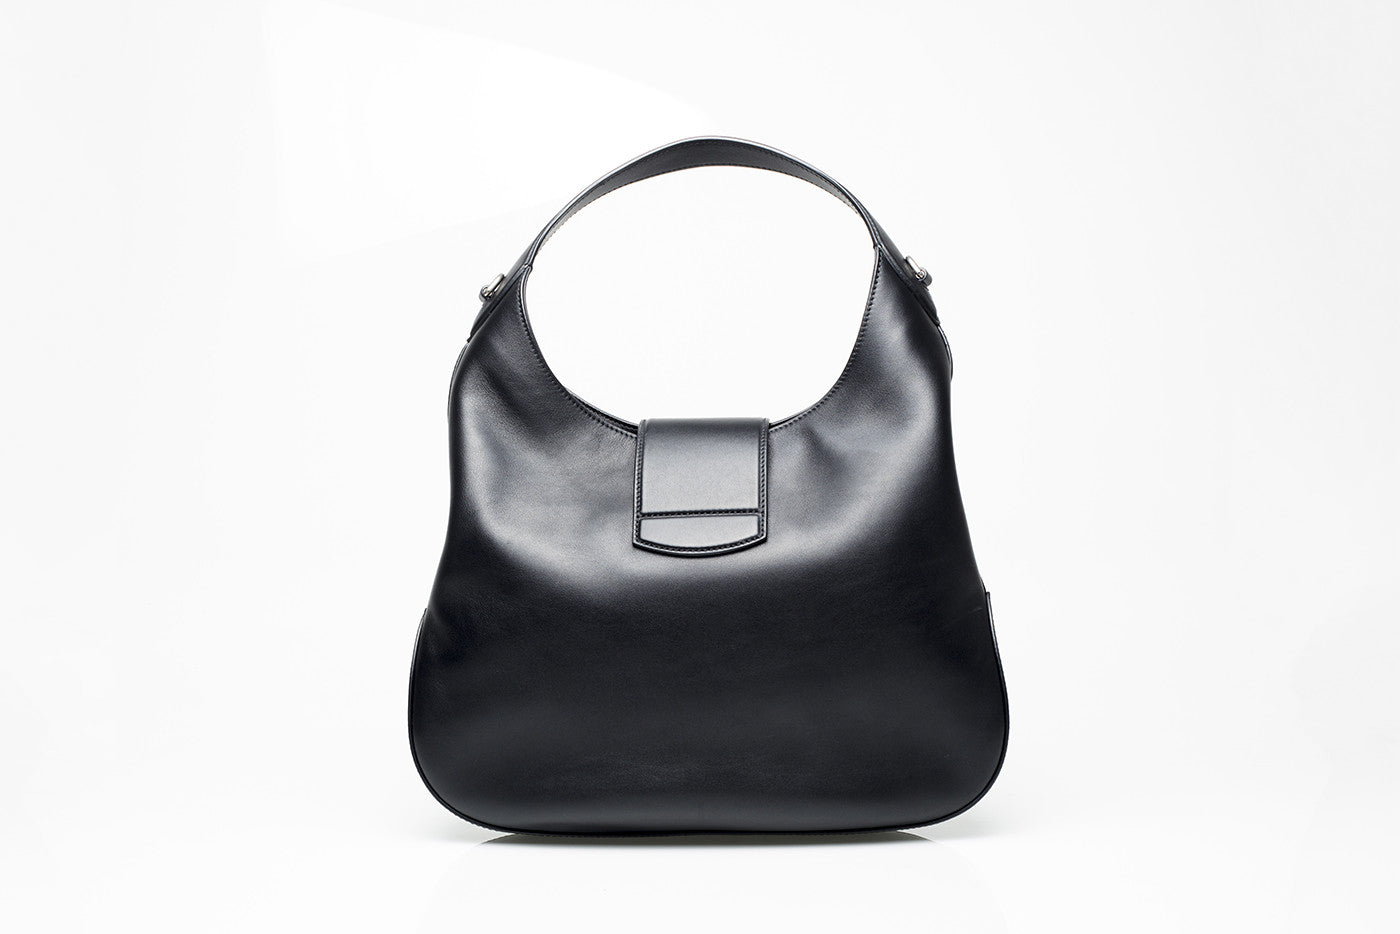 539a0ec9f753 GG Supreme Black Leather Hobo GG Supreme Black Leather Hobo ...